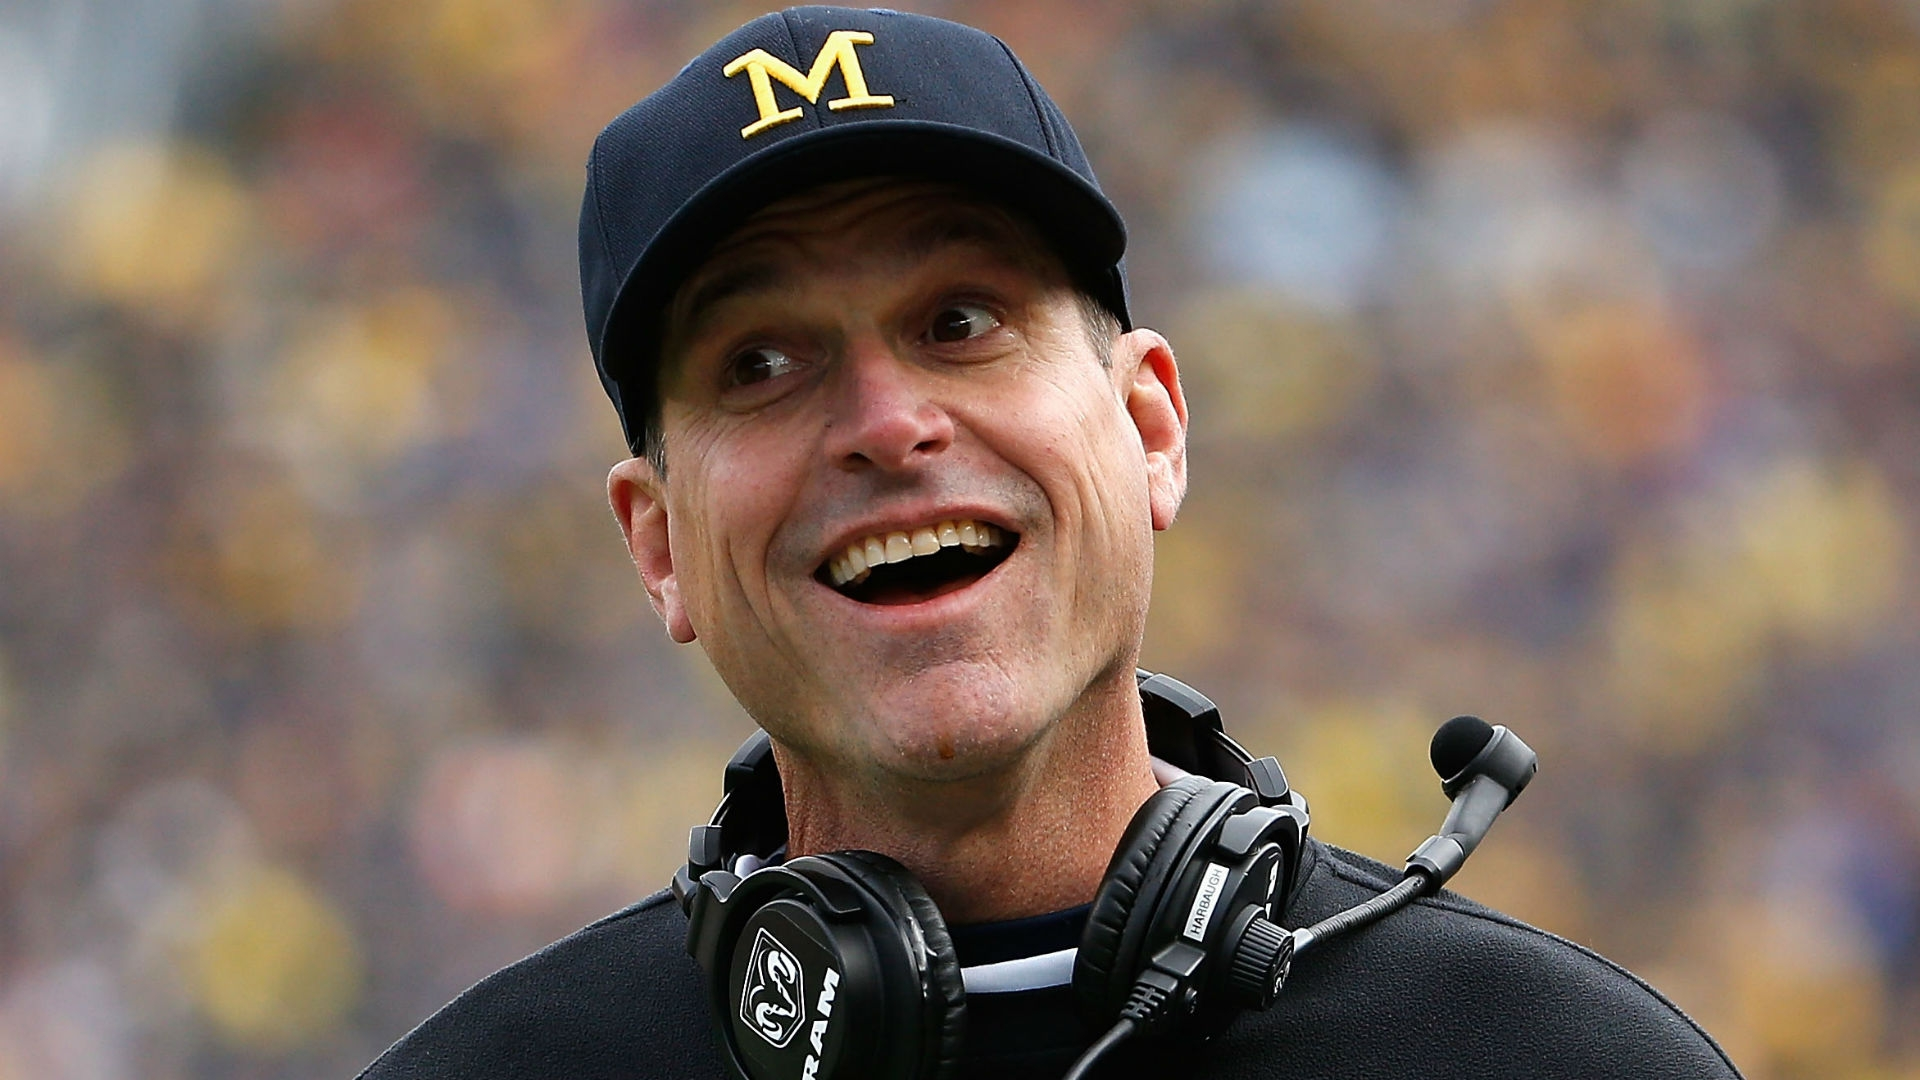 Um-jim-harbaugh-123115-getty-ftr_1tfo0nkrwd3ot1a6nmqfwnxnd1